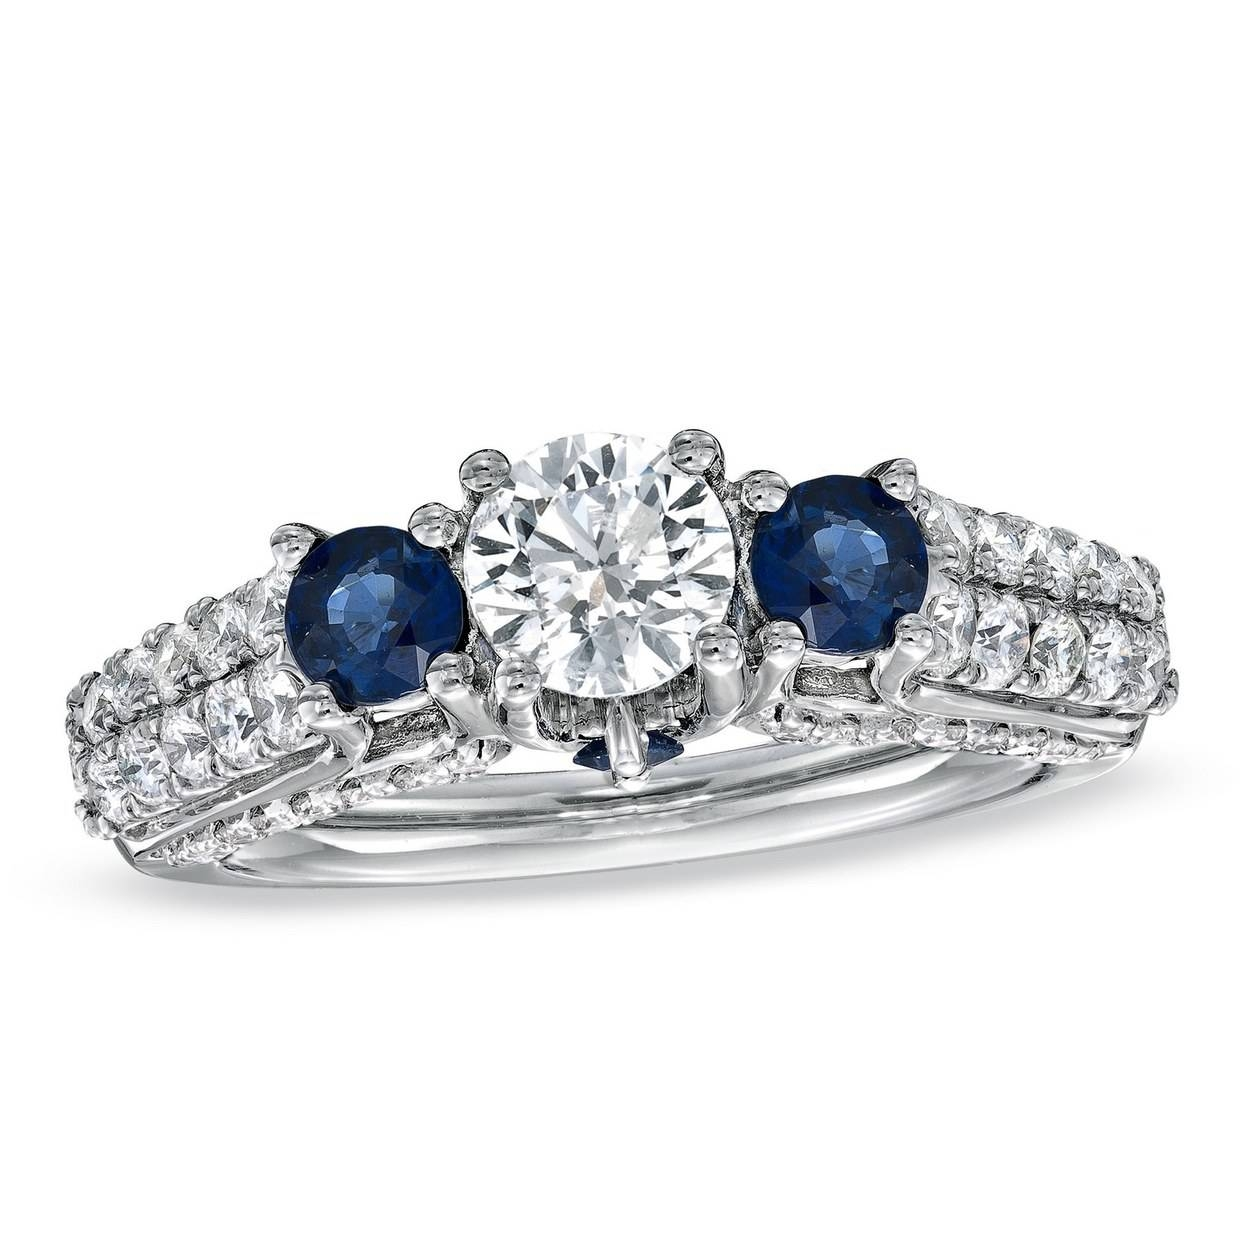 62 Diamond Engagement Rings Under $5,000 | Glamour With Regard To Engagement Rings With Sapphire (View 2 of 15)